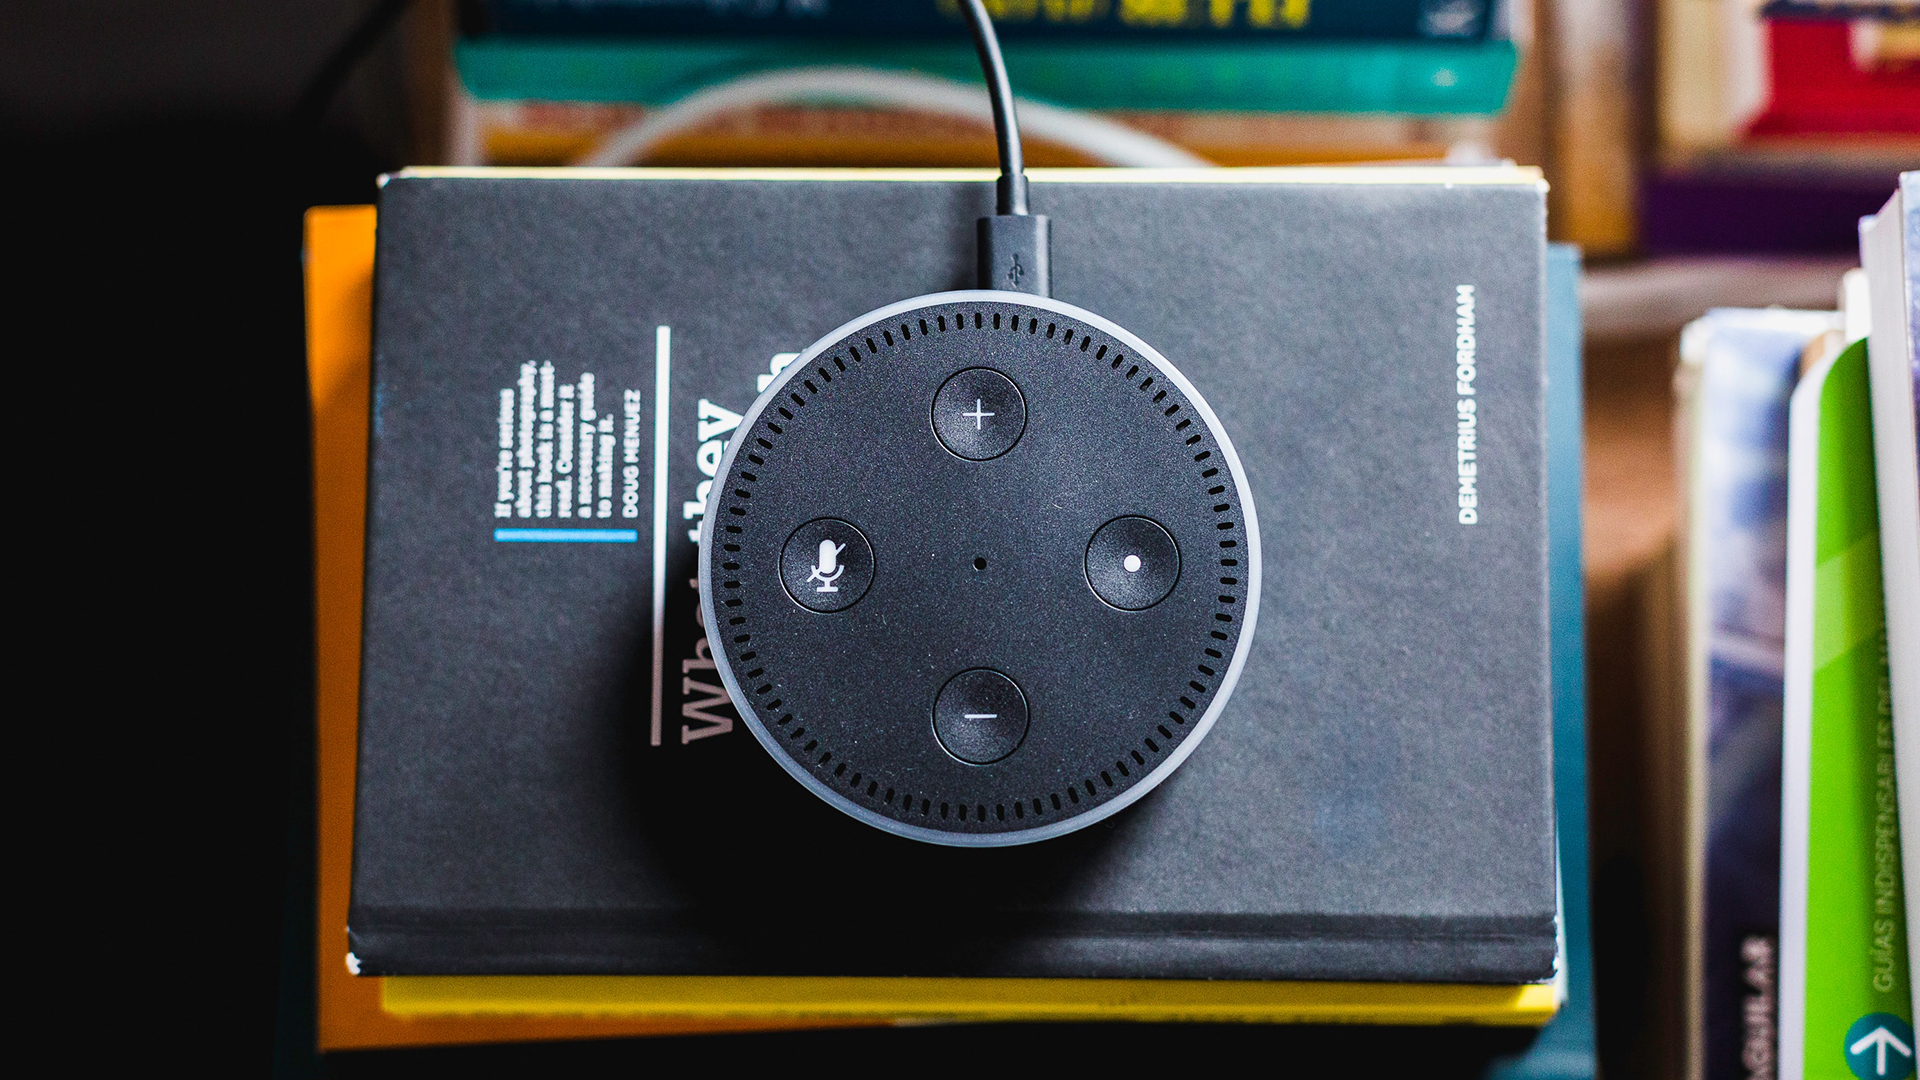 Relying More On Voice-Activated Tech? 10 Important Things Users Should Know